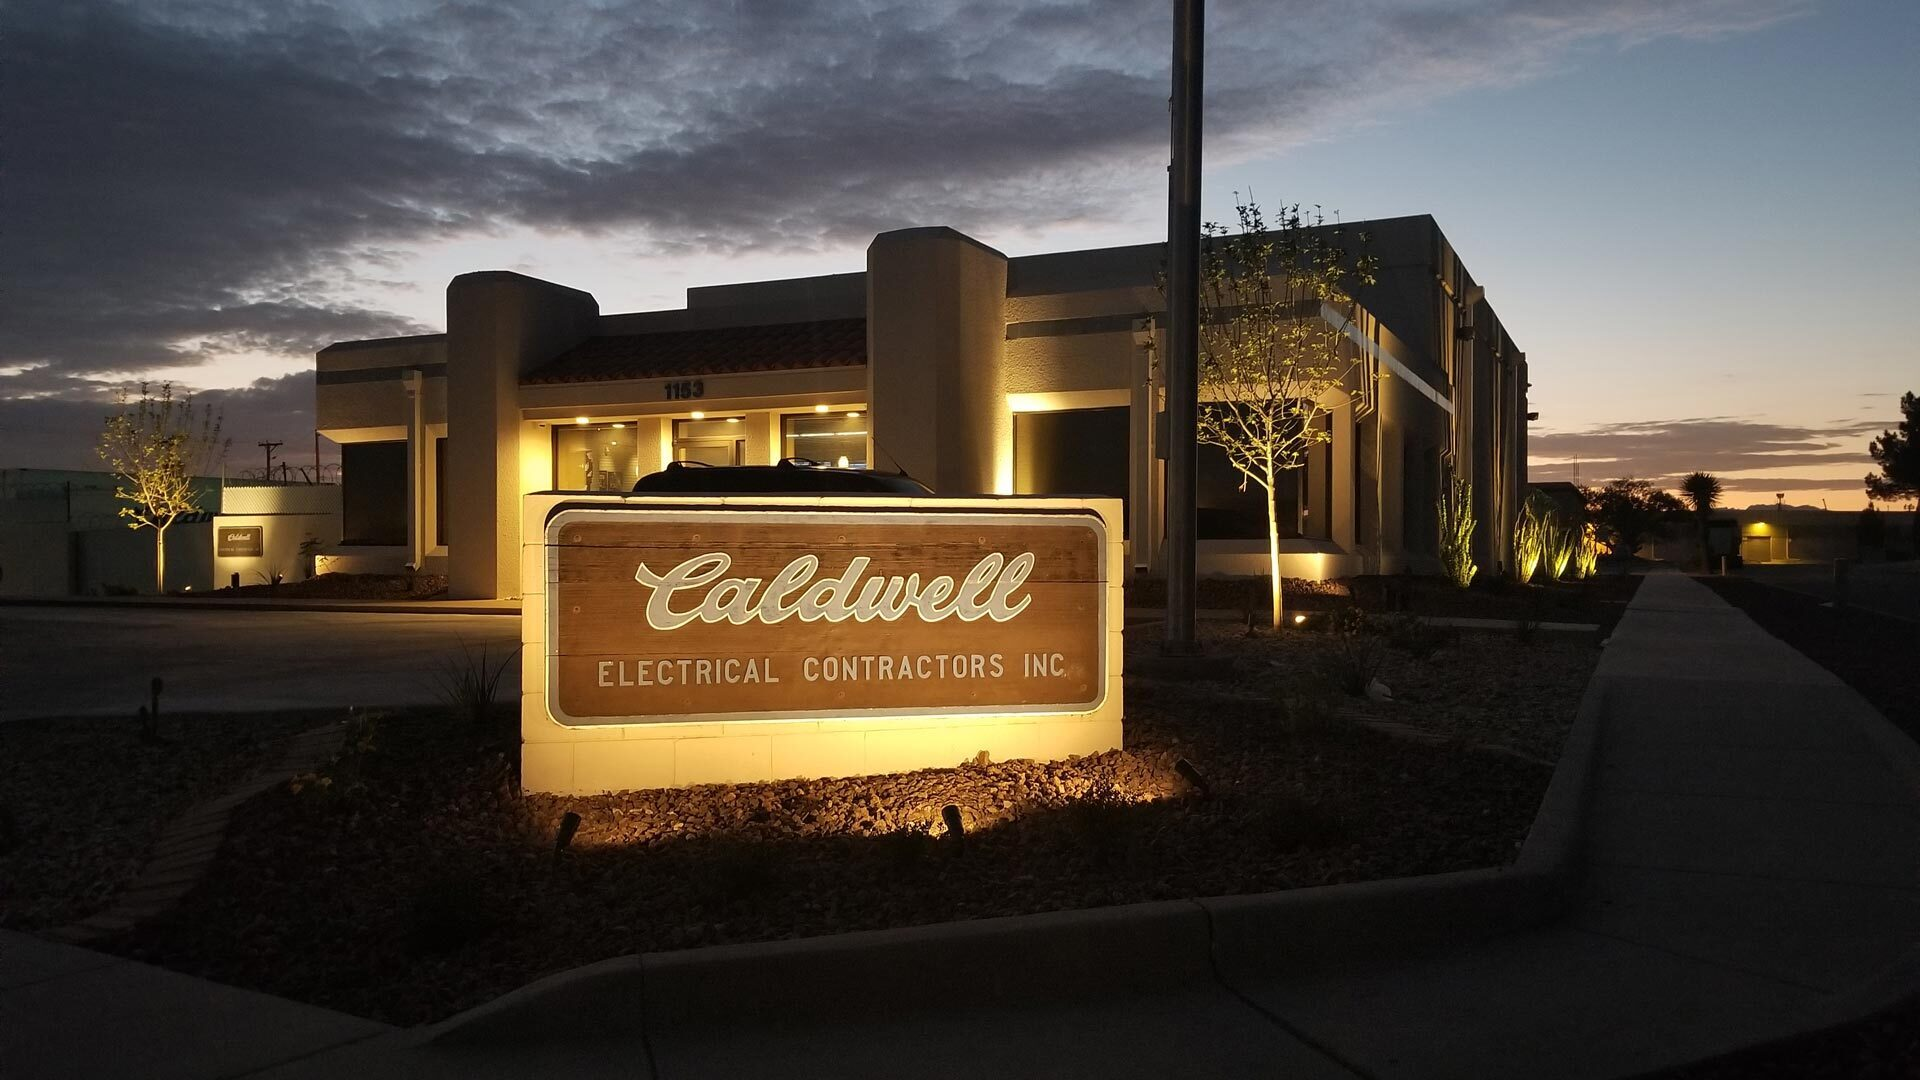 Caldwell Electrical Contractors Office